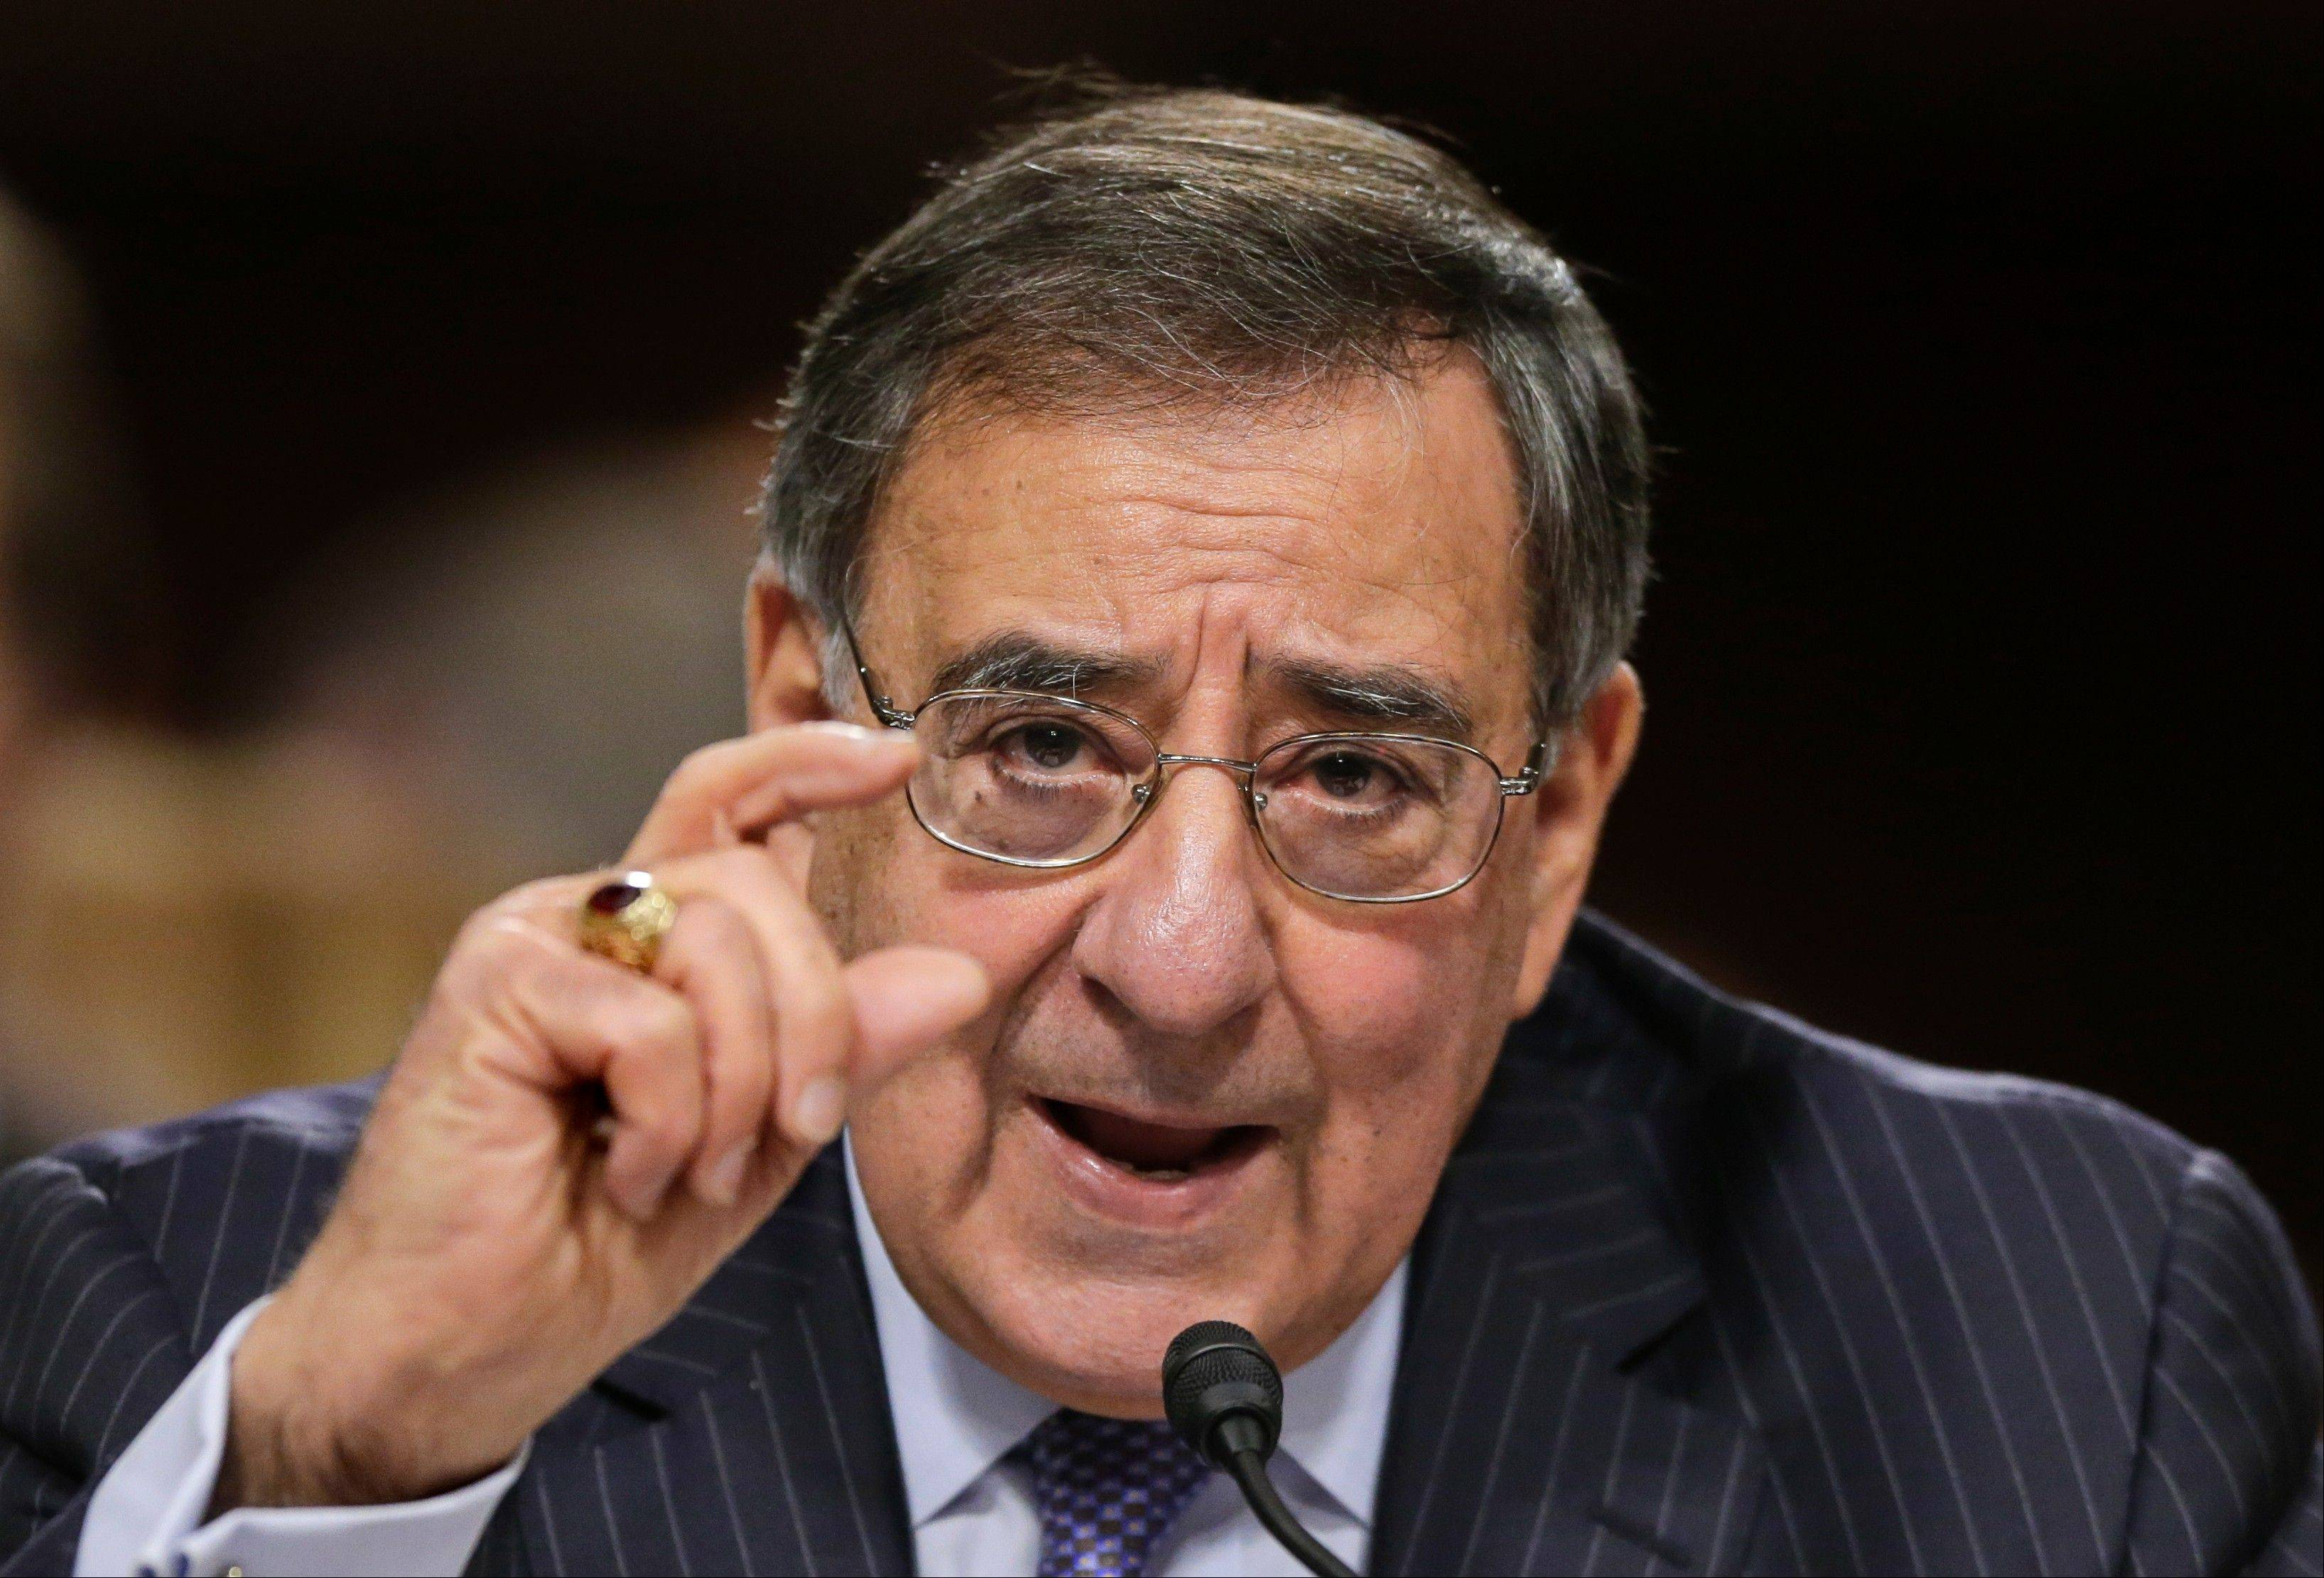 Outgoing Defense Secretary Leon Panetta testifies on Capitol Hill Thursday before the Senate Armed Services Committee about the Pentagon's role in responding to the attack last year on the U.S. consulate in Benghazi, Libya, where the ambassador and three other Americans were killed.